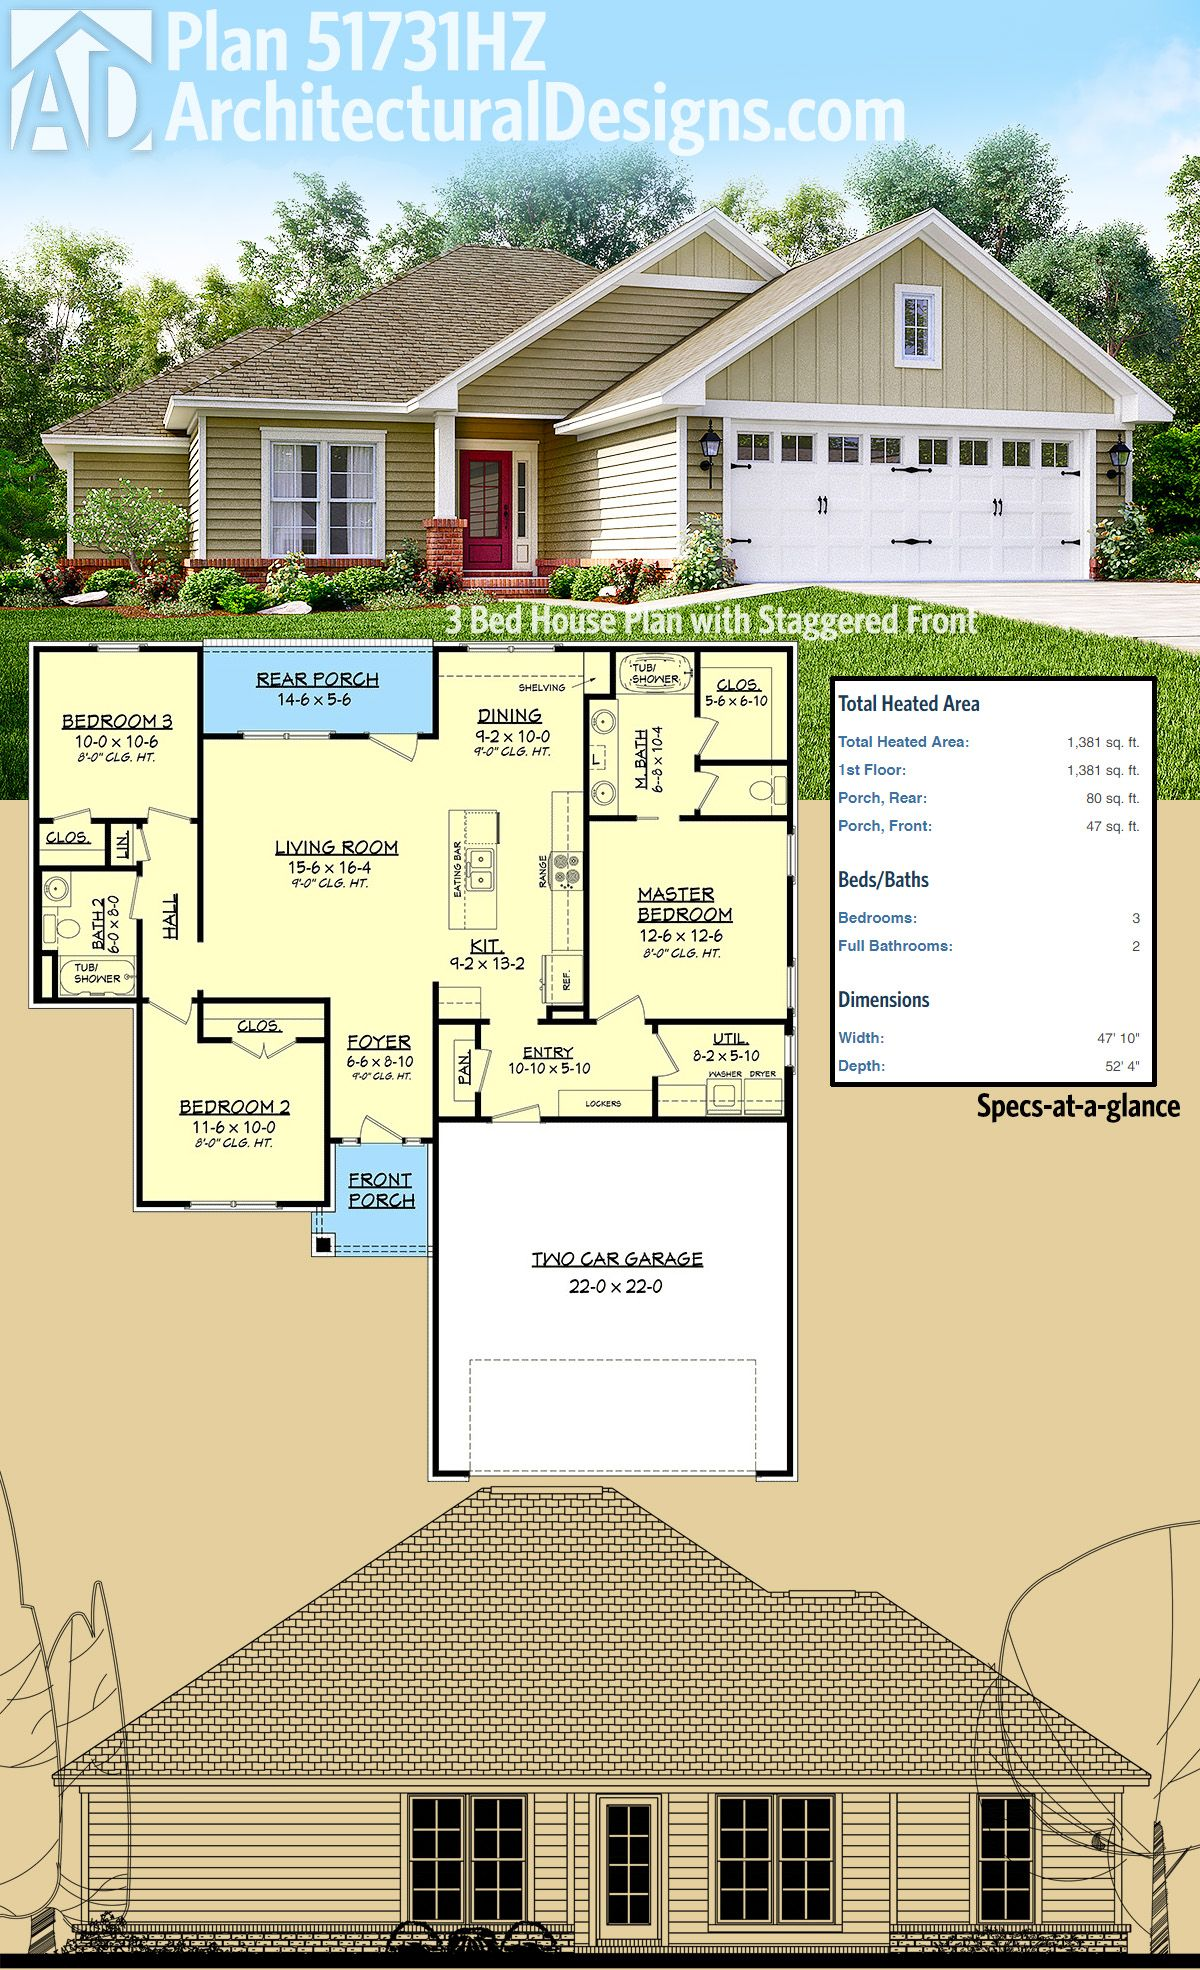 Architectural designs 3 bed house plan 51731hz has a House plans under 1400 sq ft